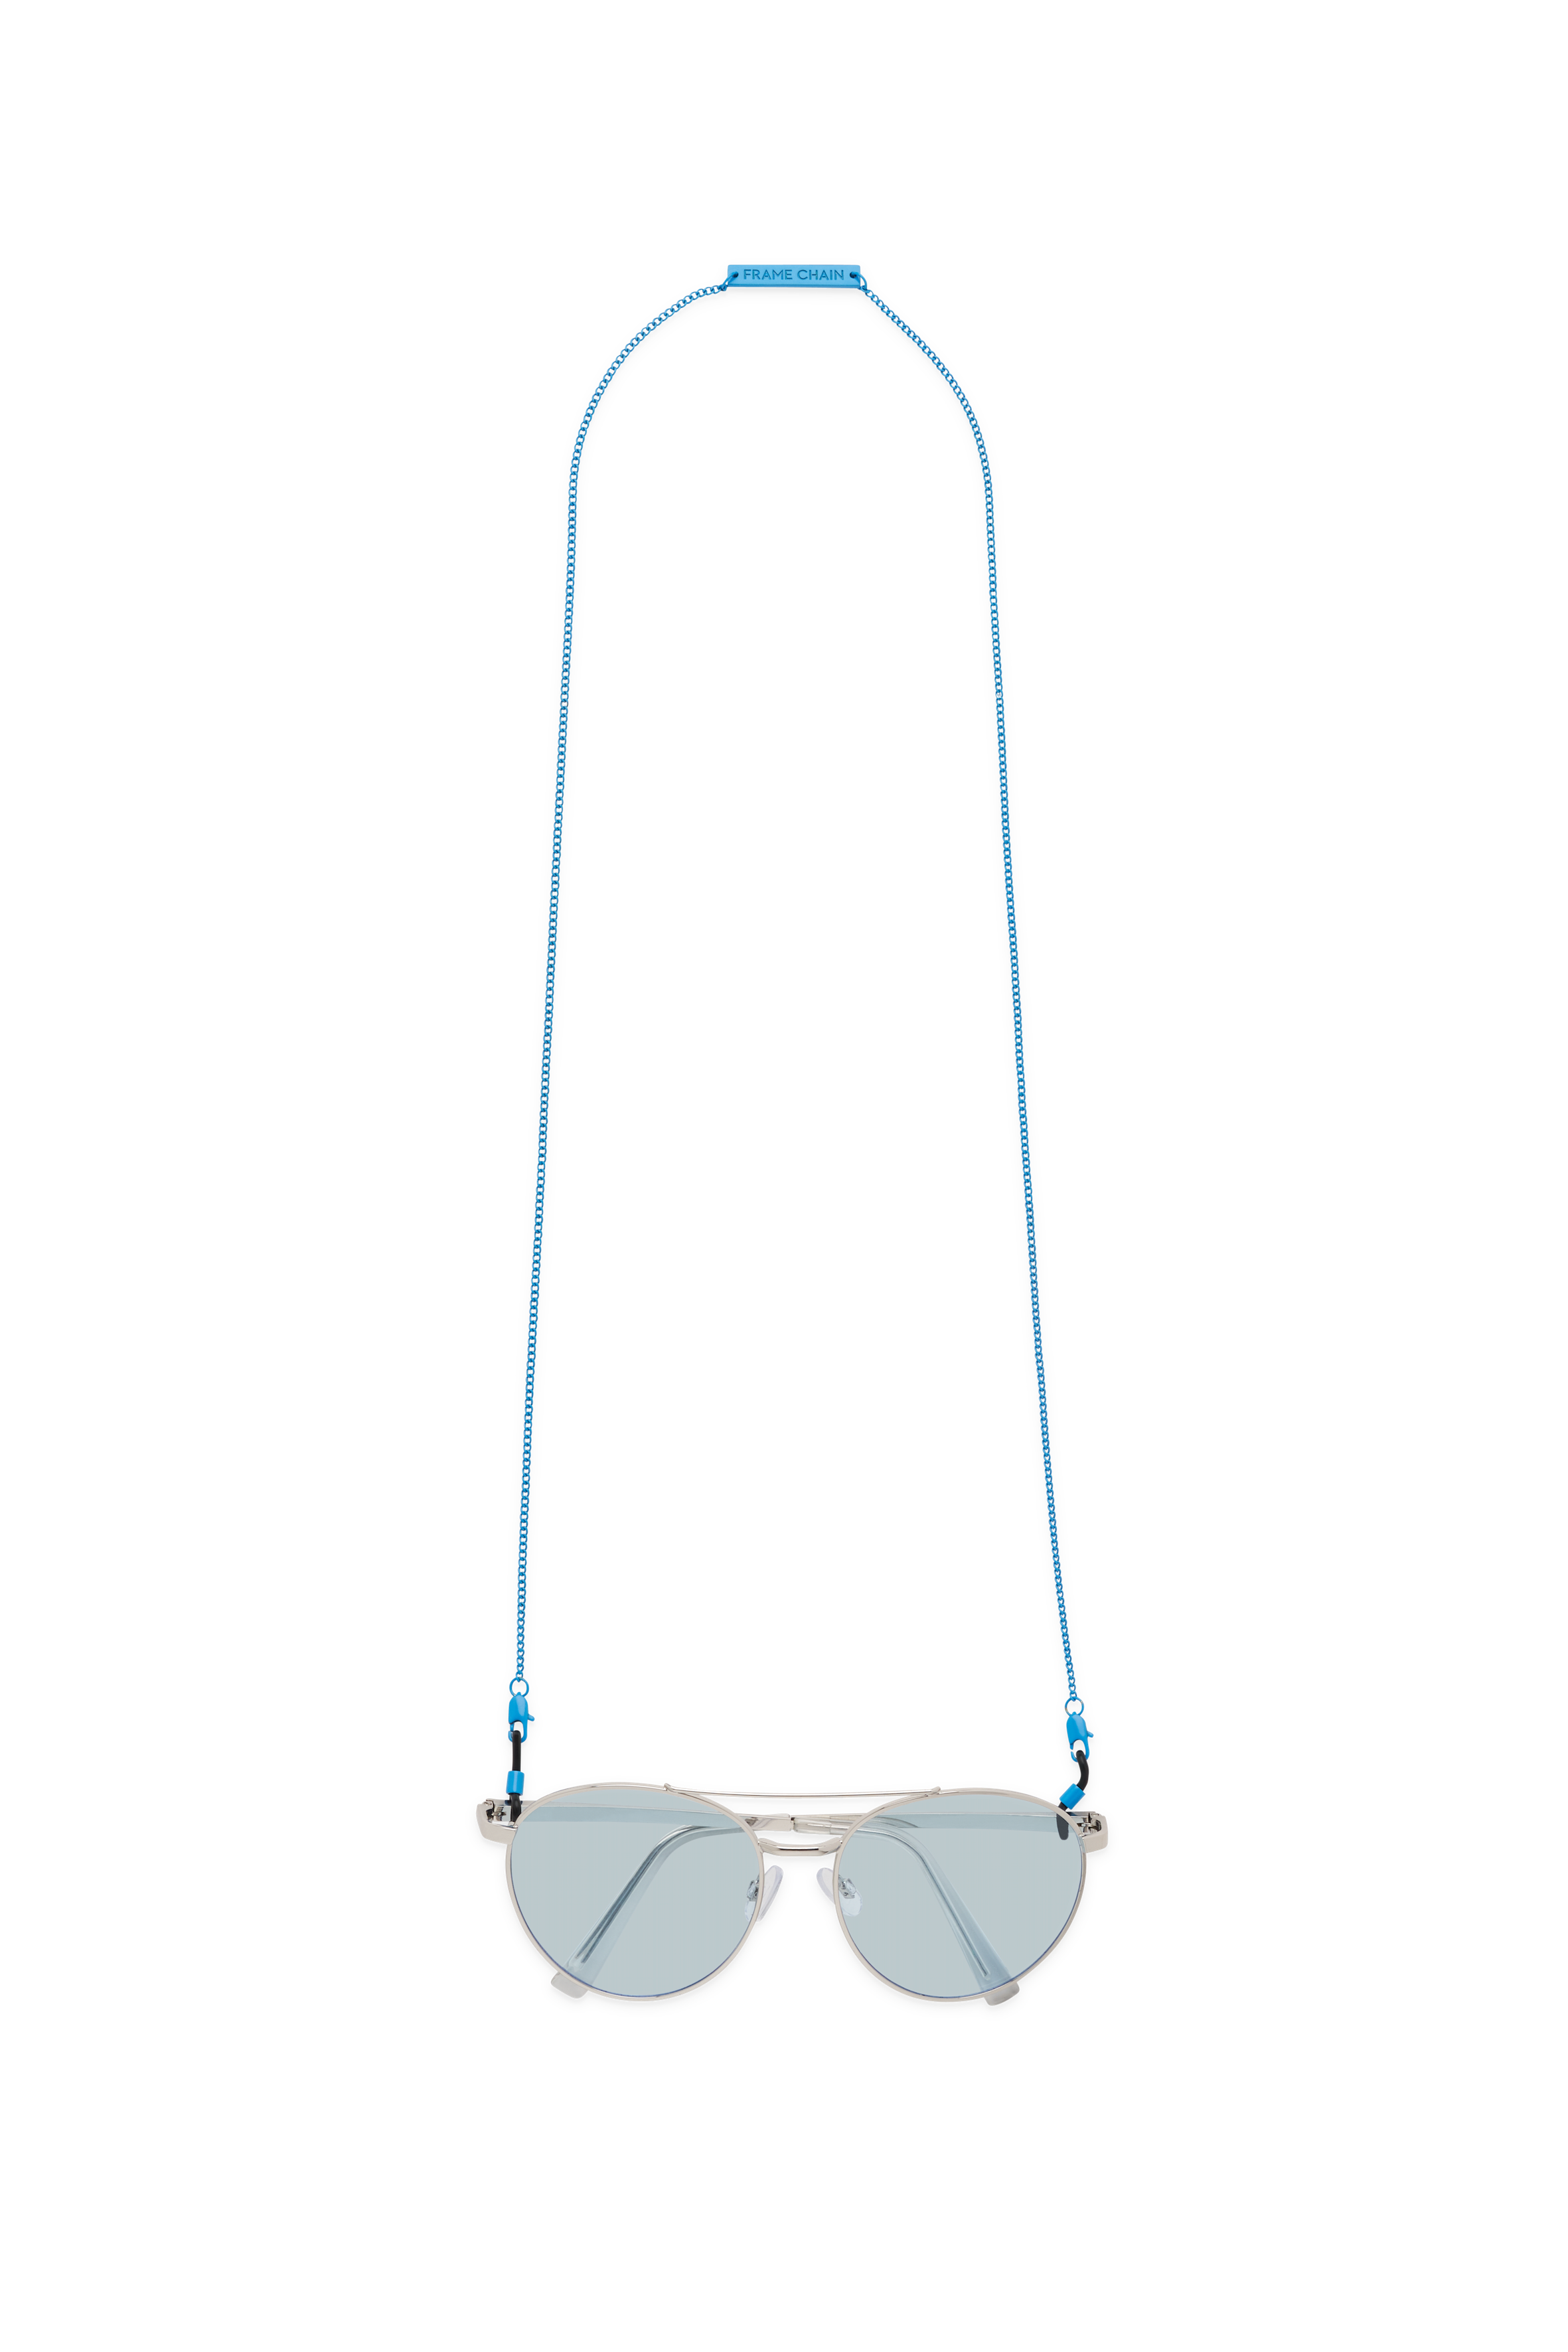 FRAME CHAIN | ALAN in COOL | Glasses Chains | Eyewear Chains